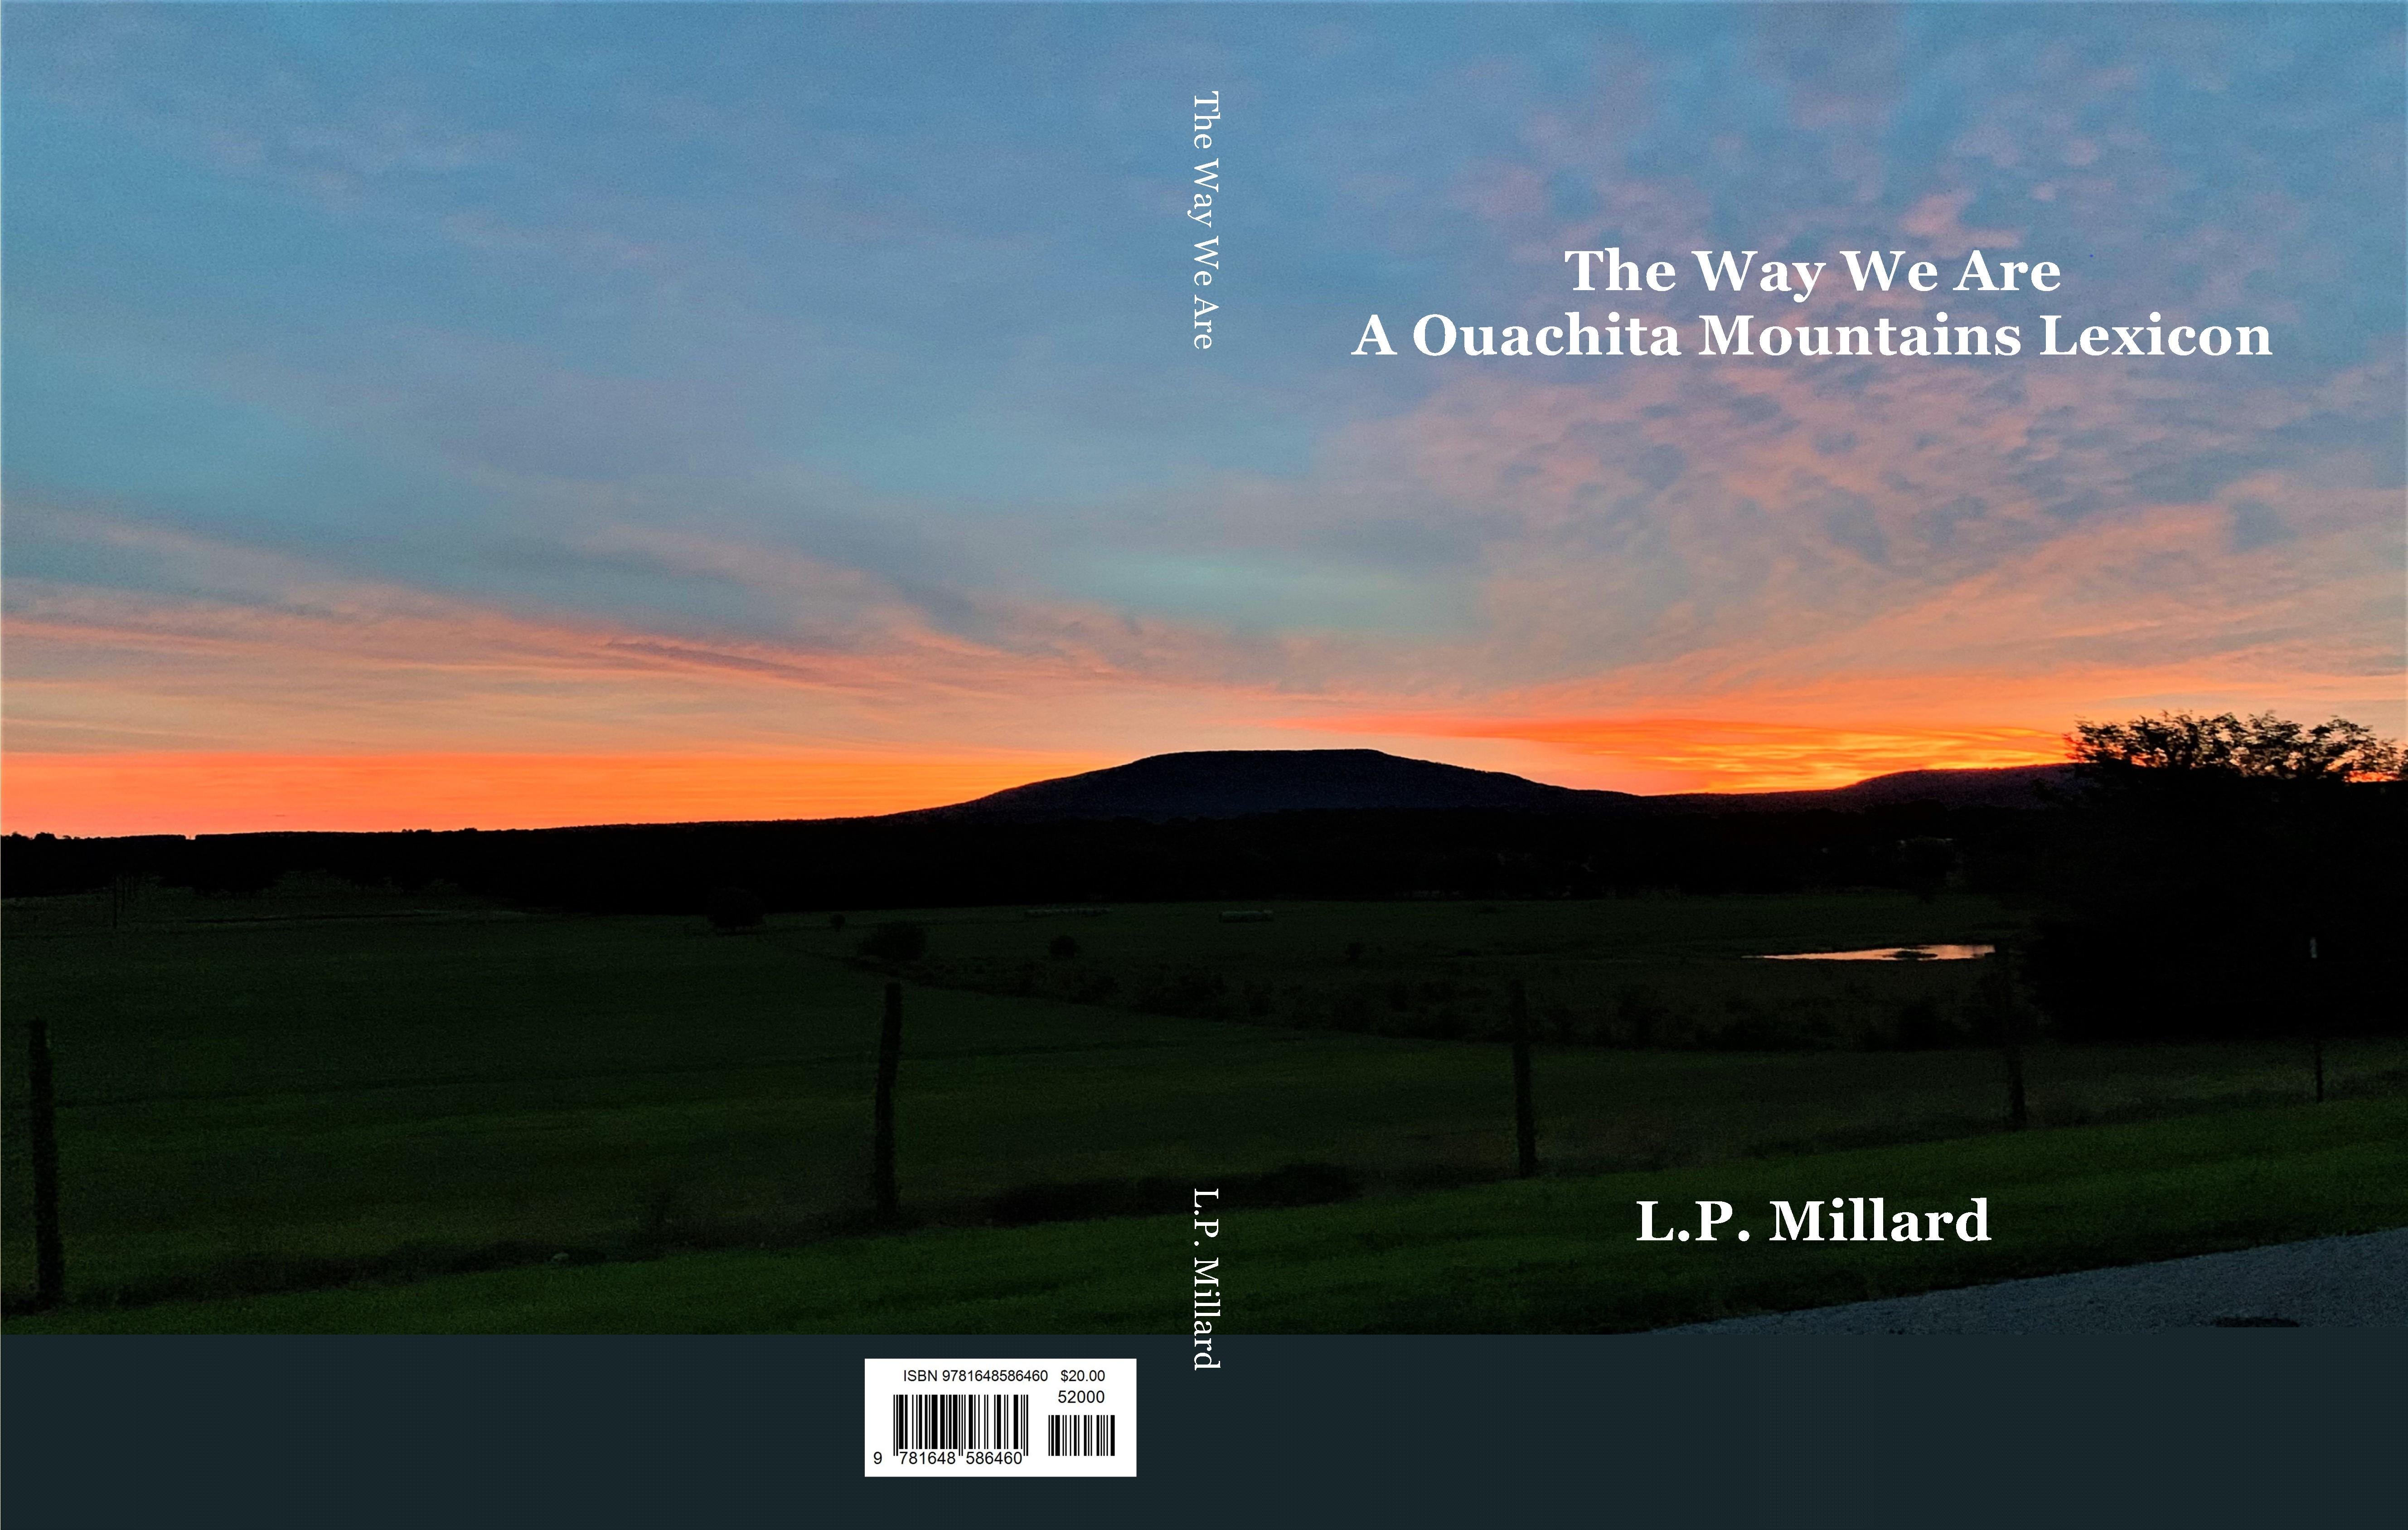 The Way We Are cover image